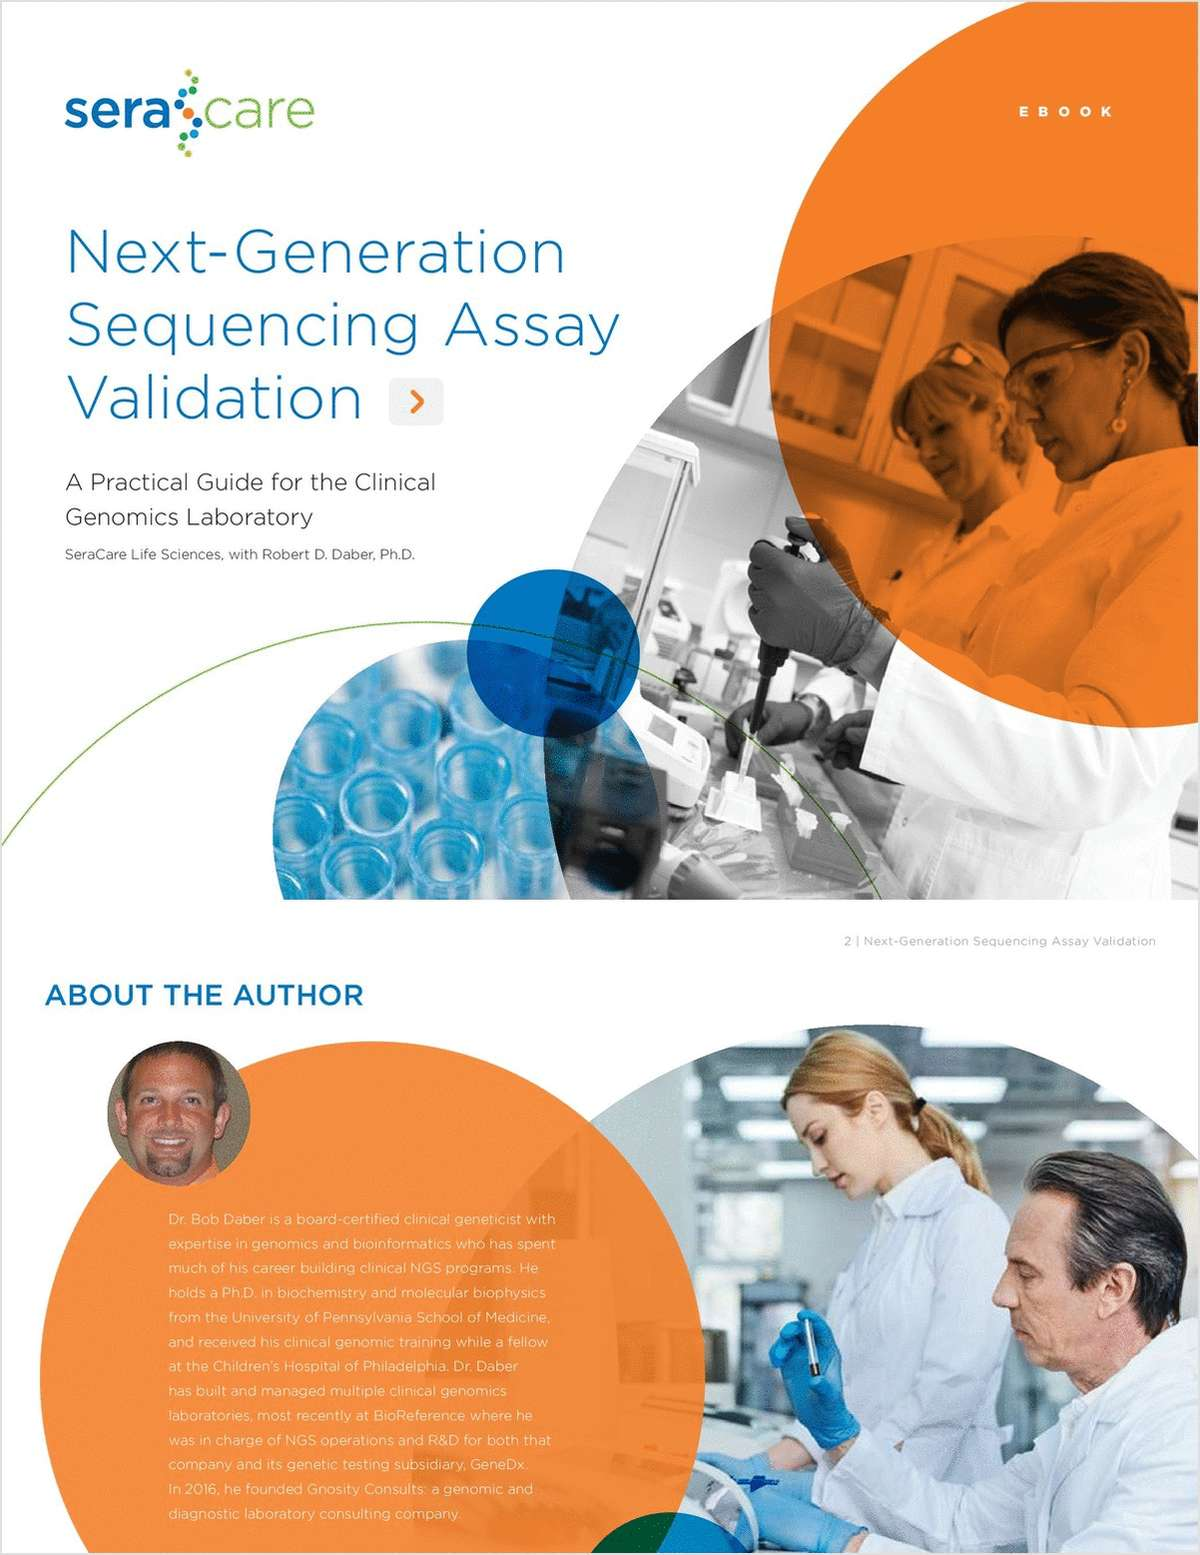 Next-Generation Sequencing Assay Validation A Practical Guide for the Clinical Genomics Laboratory (updated eBook)